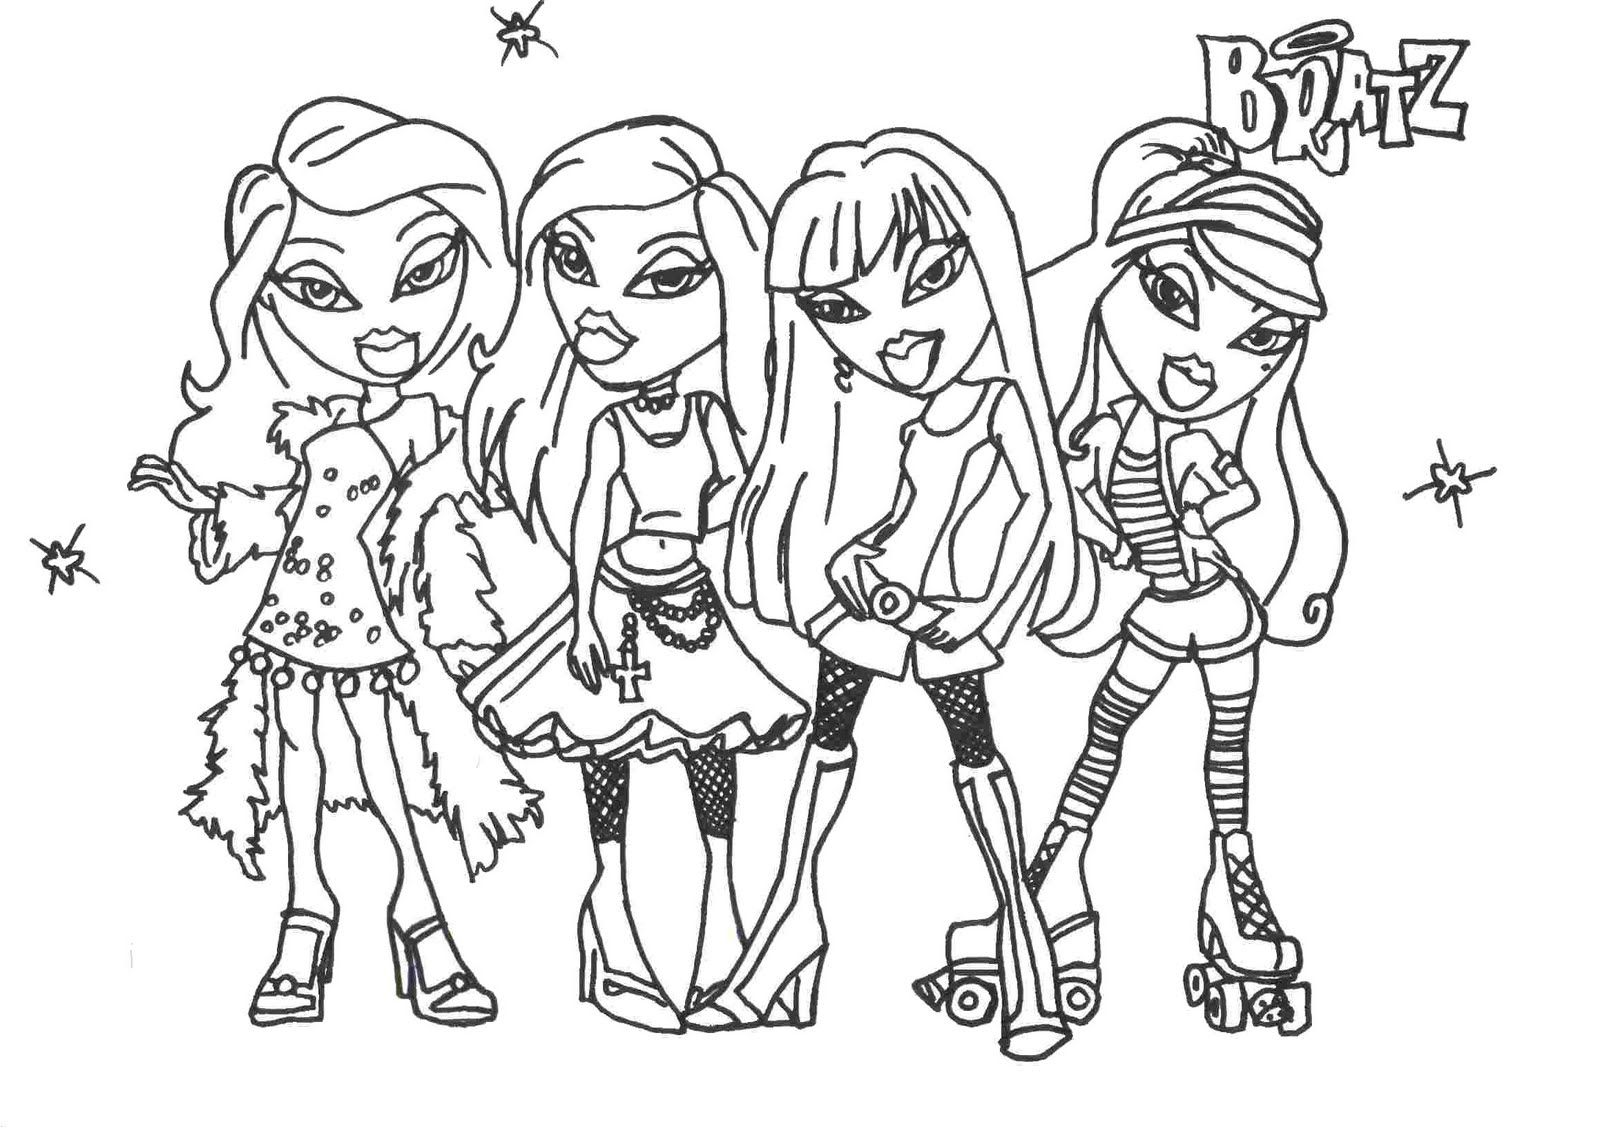 Disney coloring games for girls - Bratz Glamor Girls Coloring Pages Disney Princess Coloring Pages